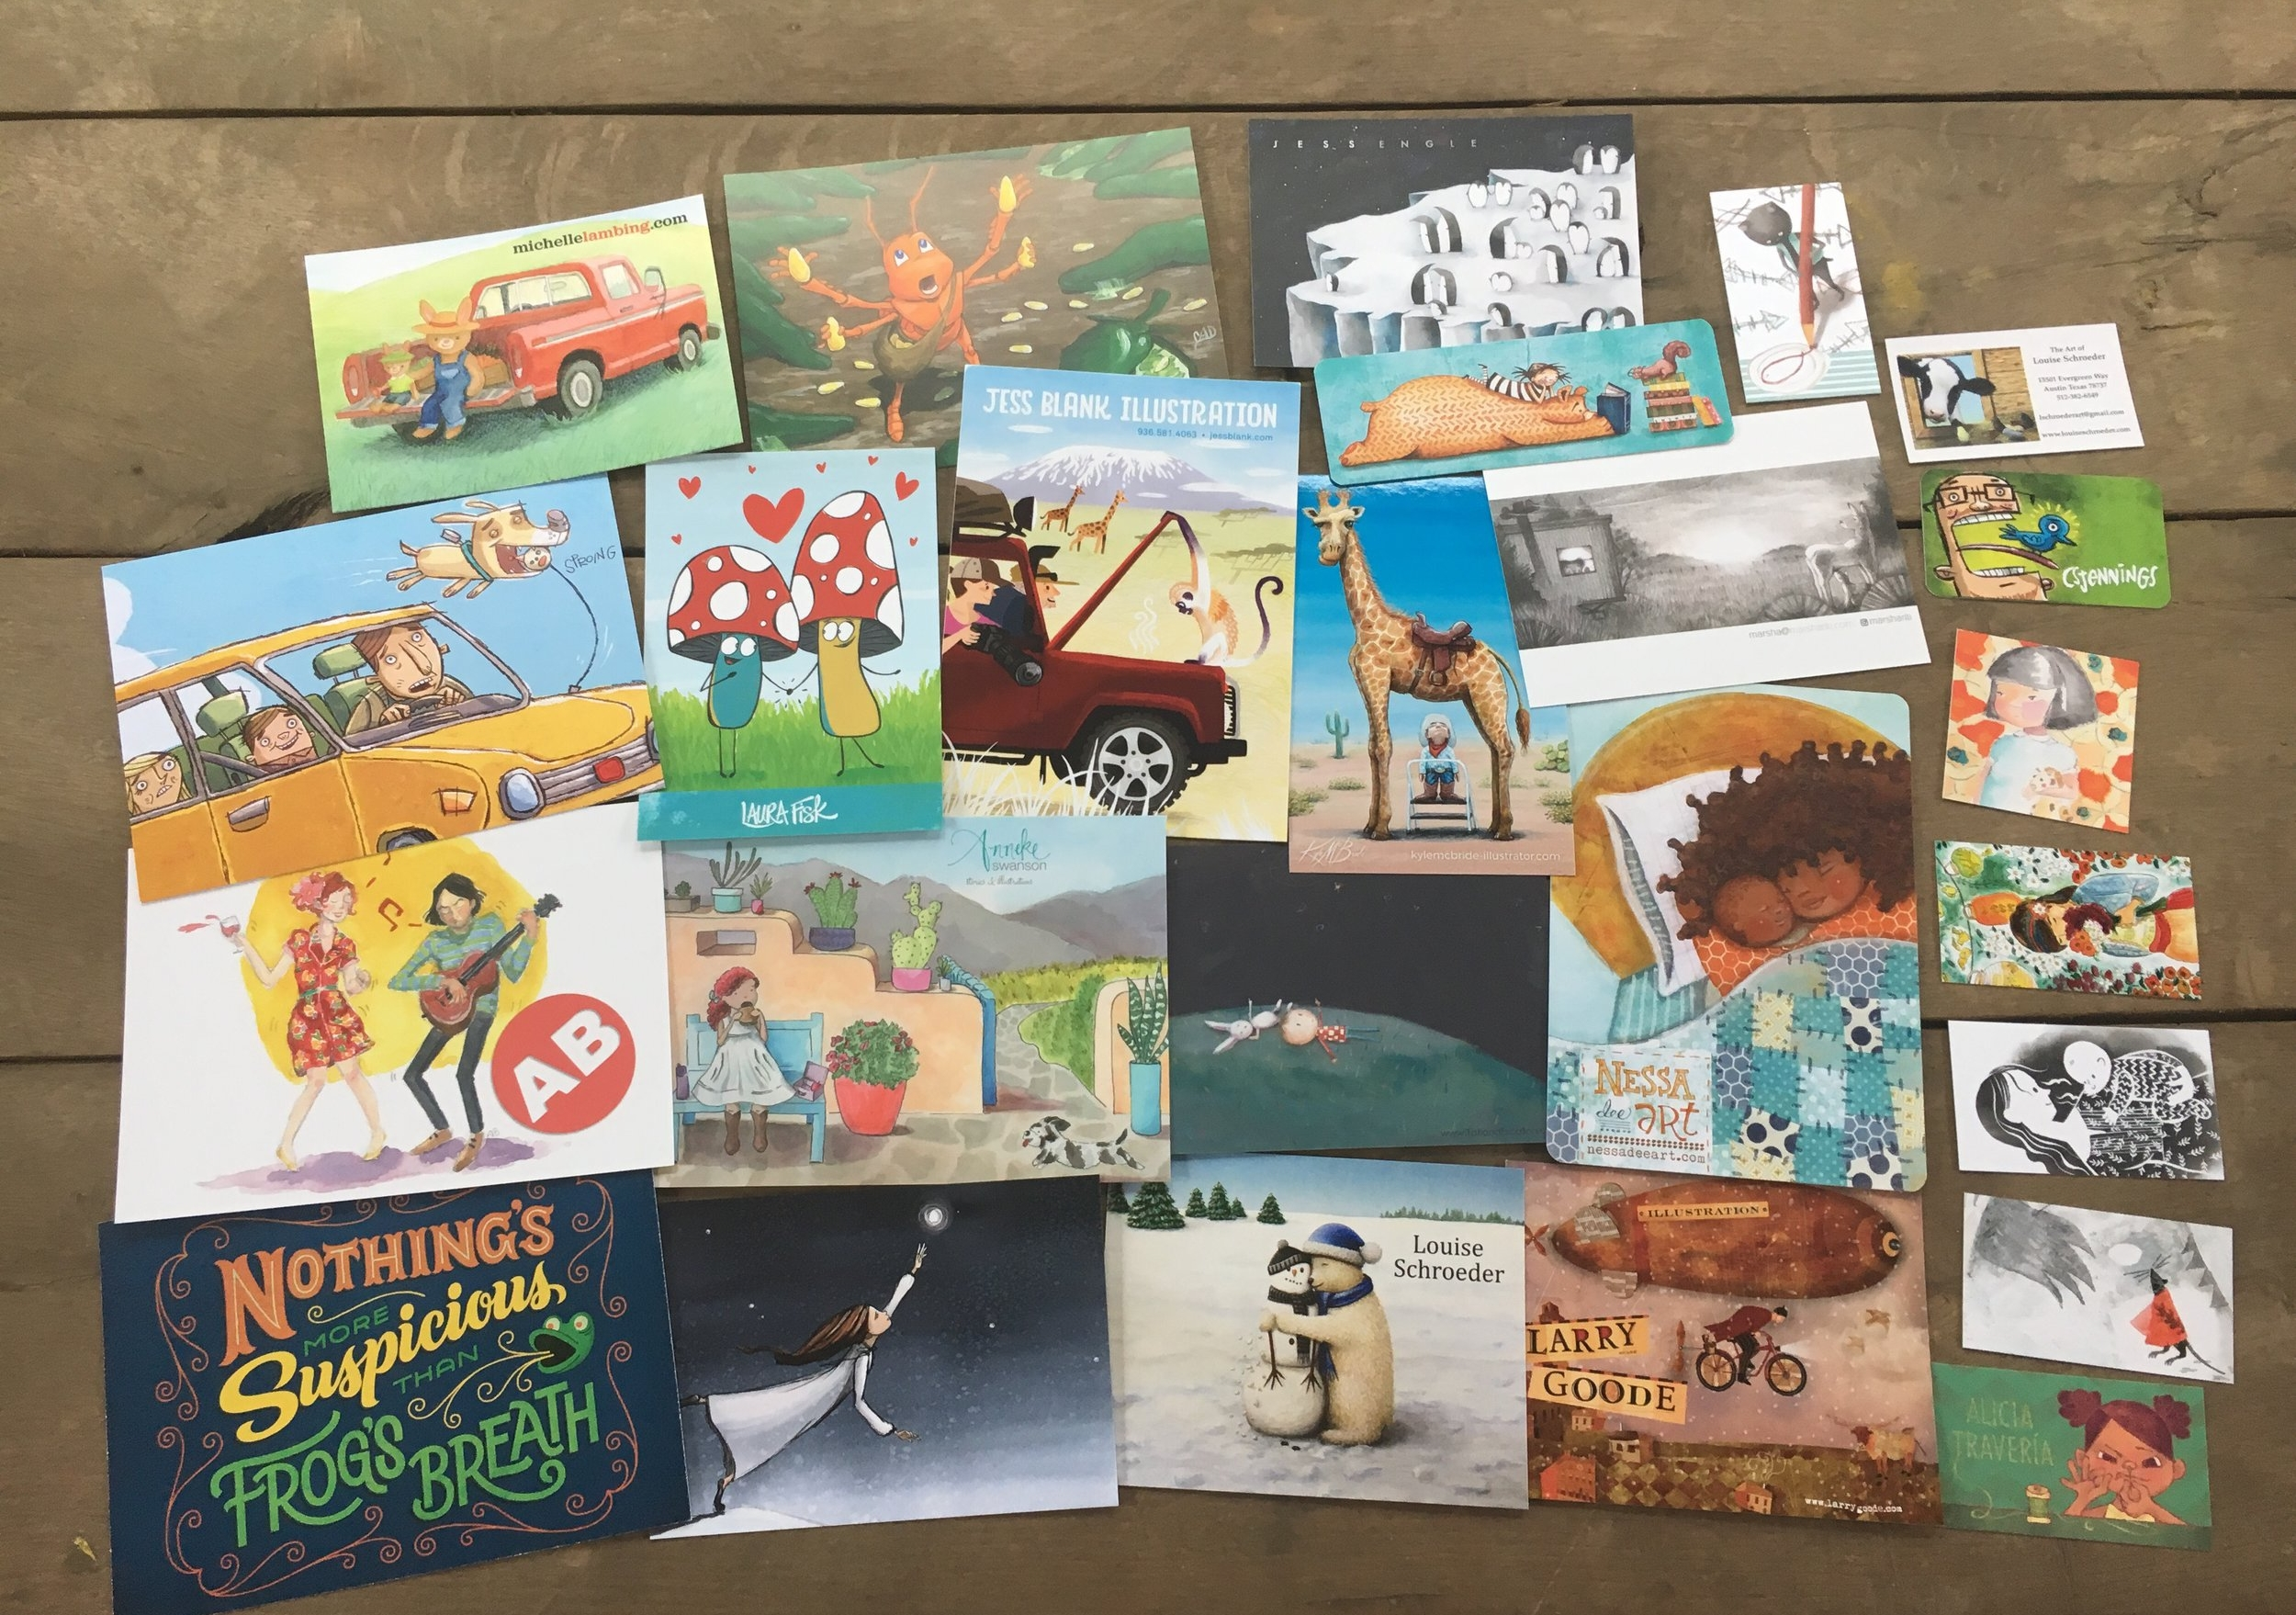 My postcard collection from the talented illustrators who were in the Portfolio Showcase.